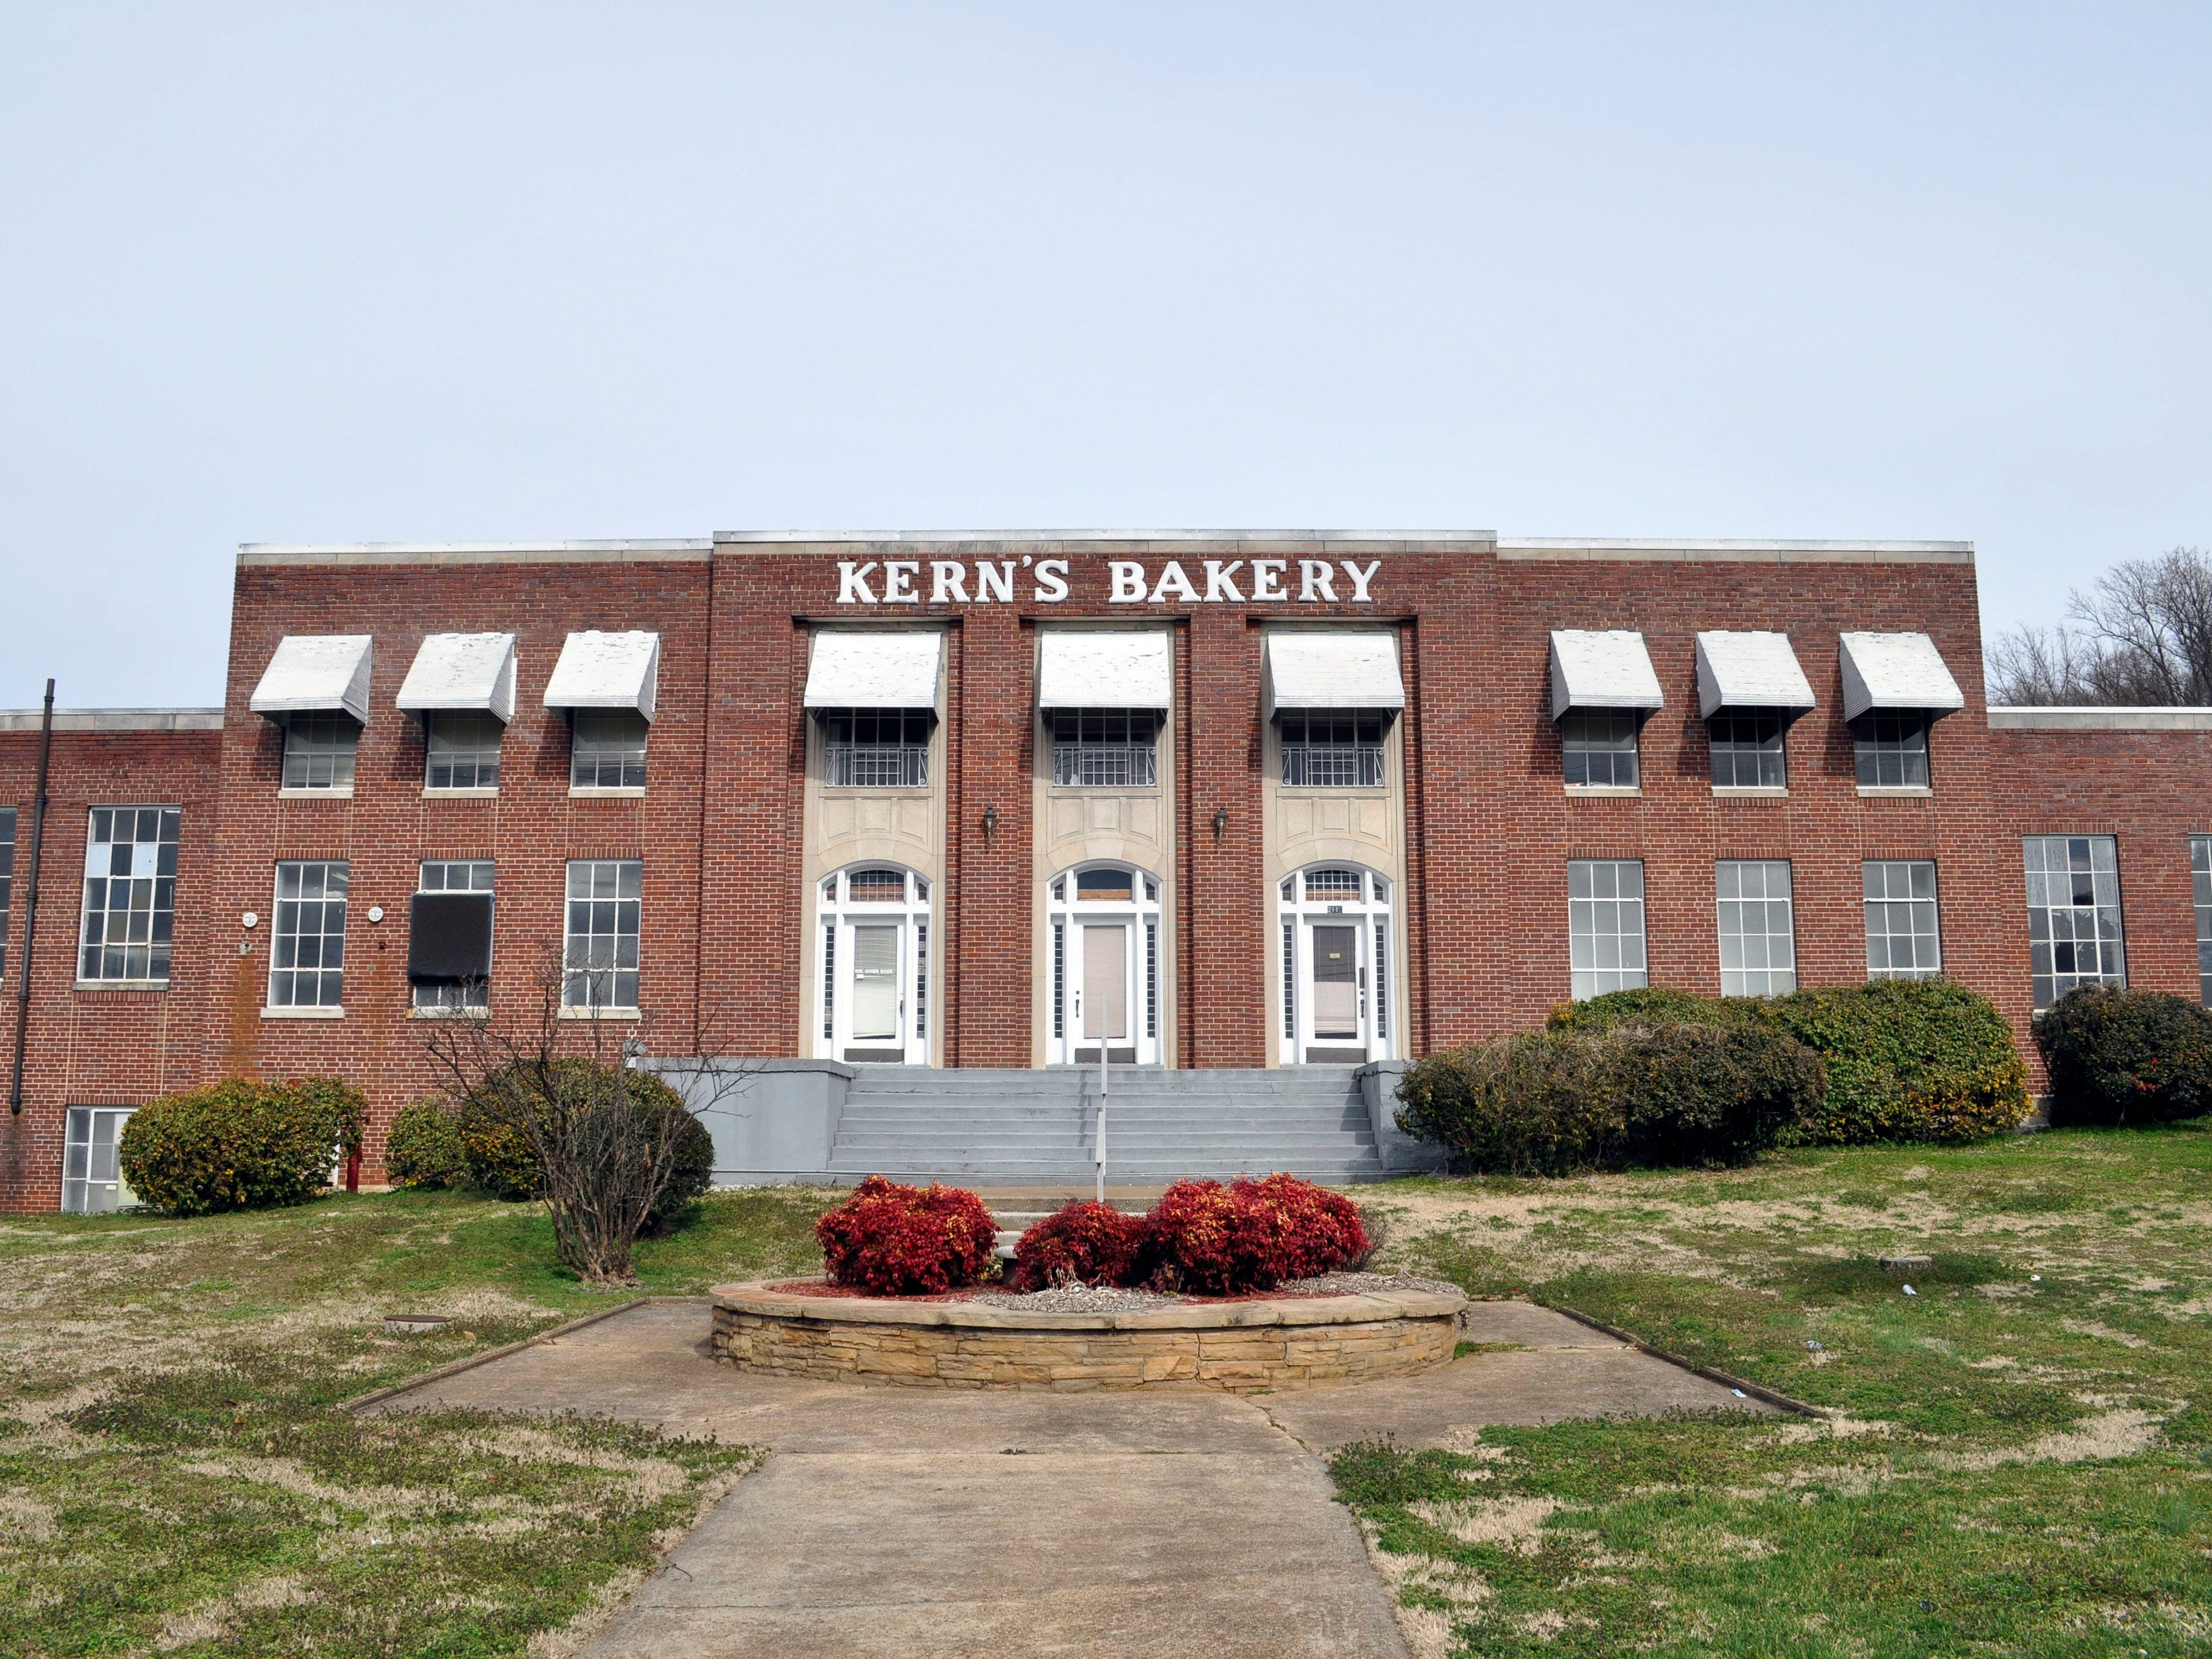 Built in 1931, the now empty Kerns Bakery sits at 2110 Chapman Highway in South Knoxville. The City Council voted this week to begin the process to historically designate the property that would prevent the building from demolition.  (COURTESY, KNOX HERITAGE, INC.)